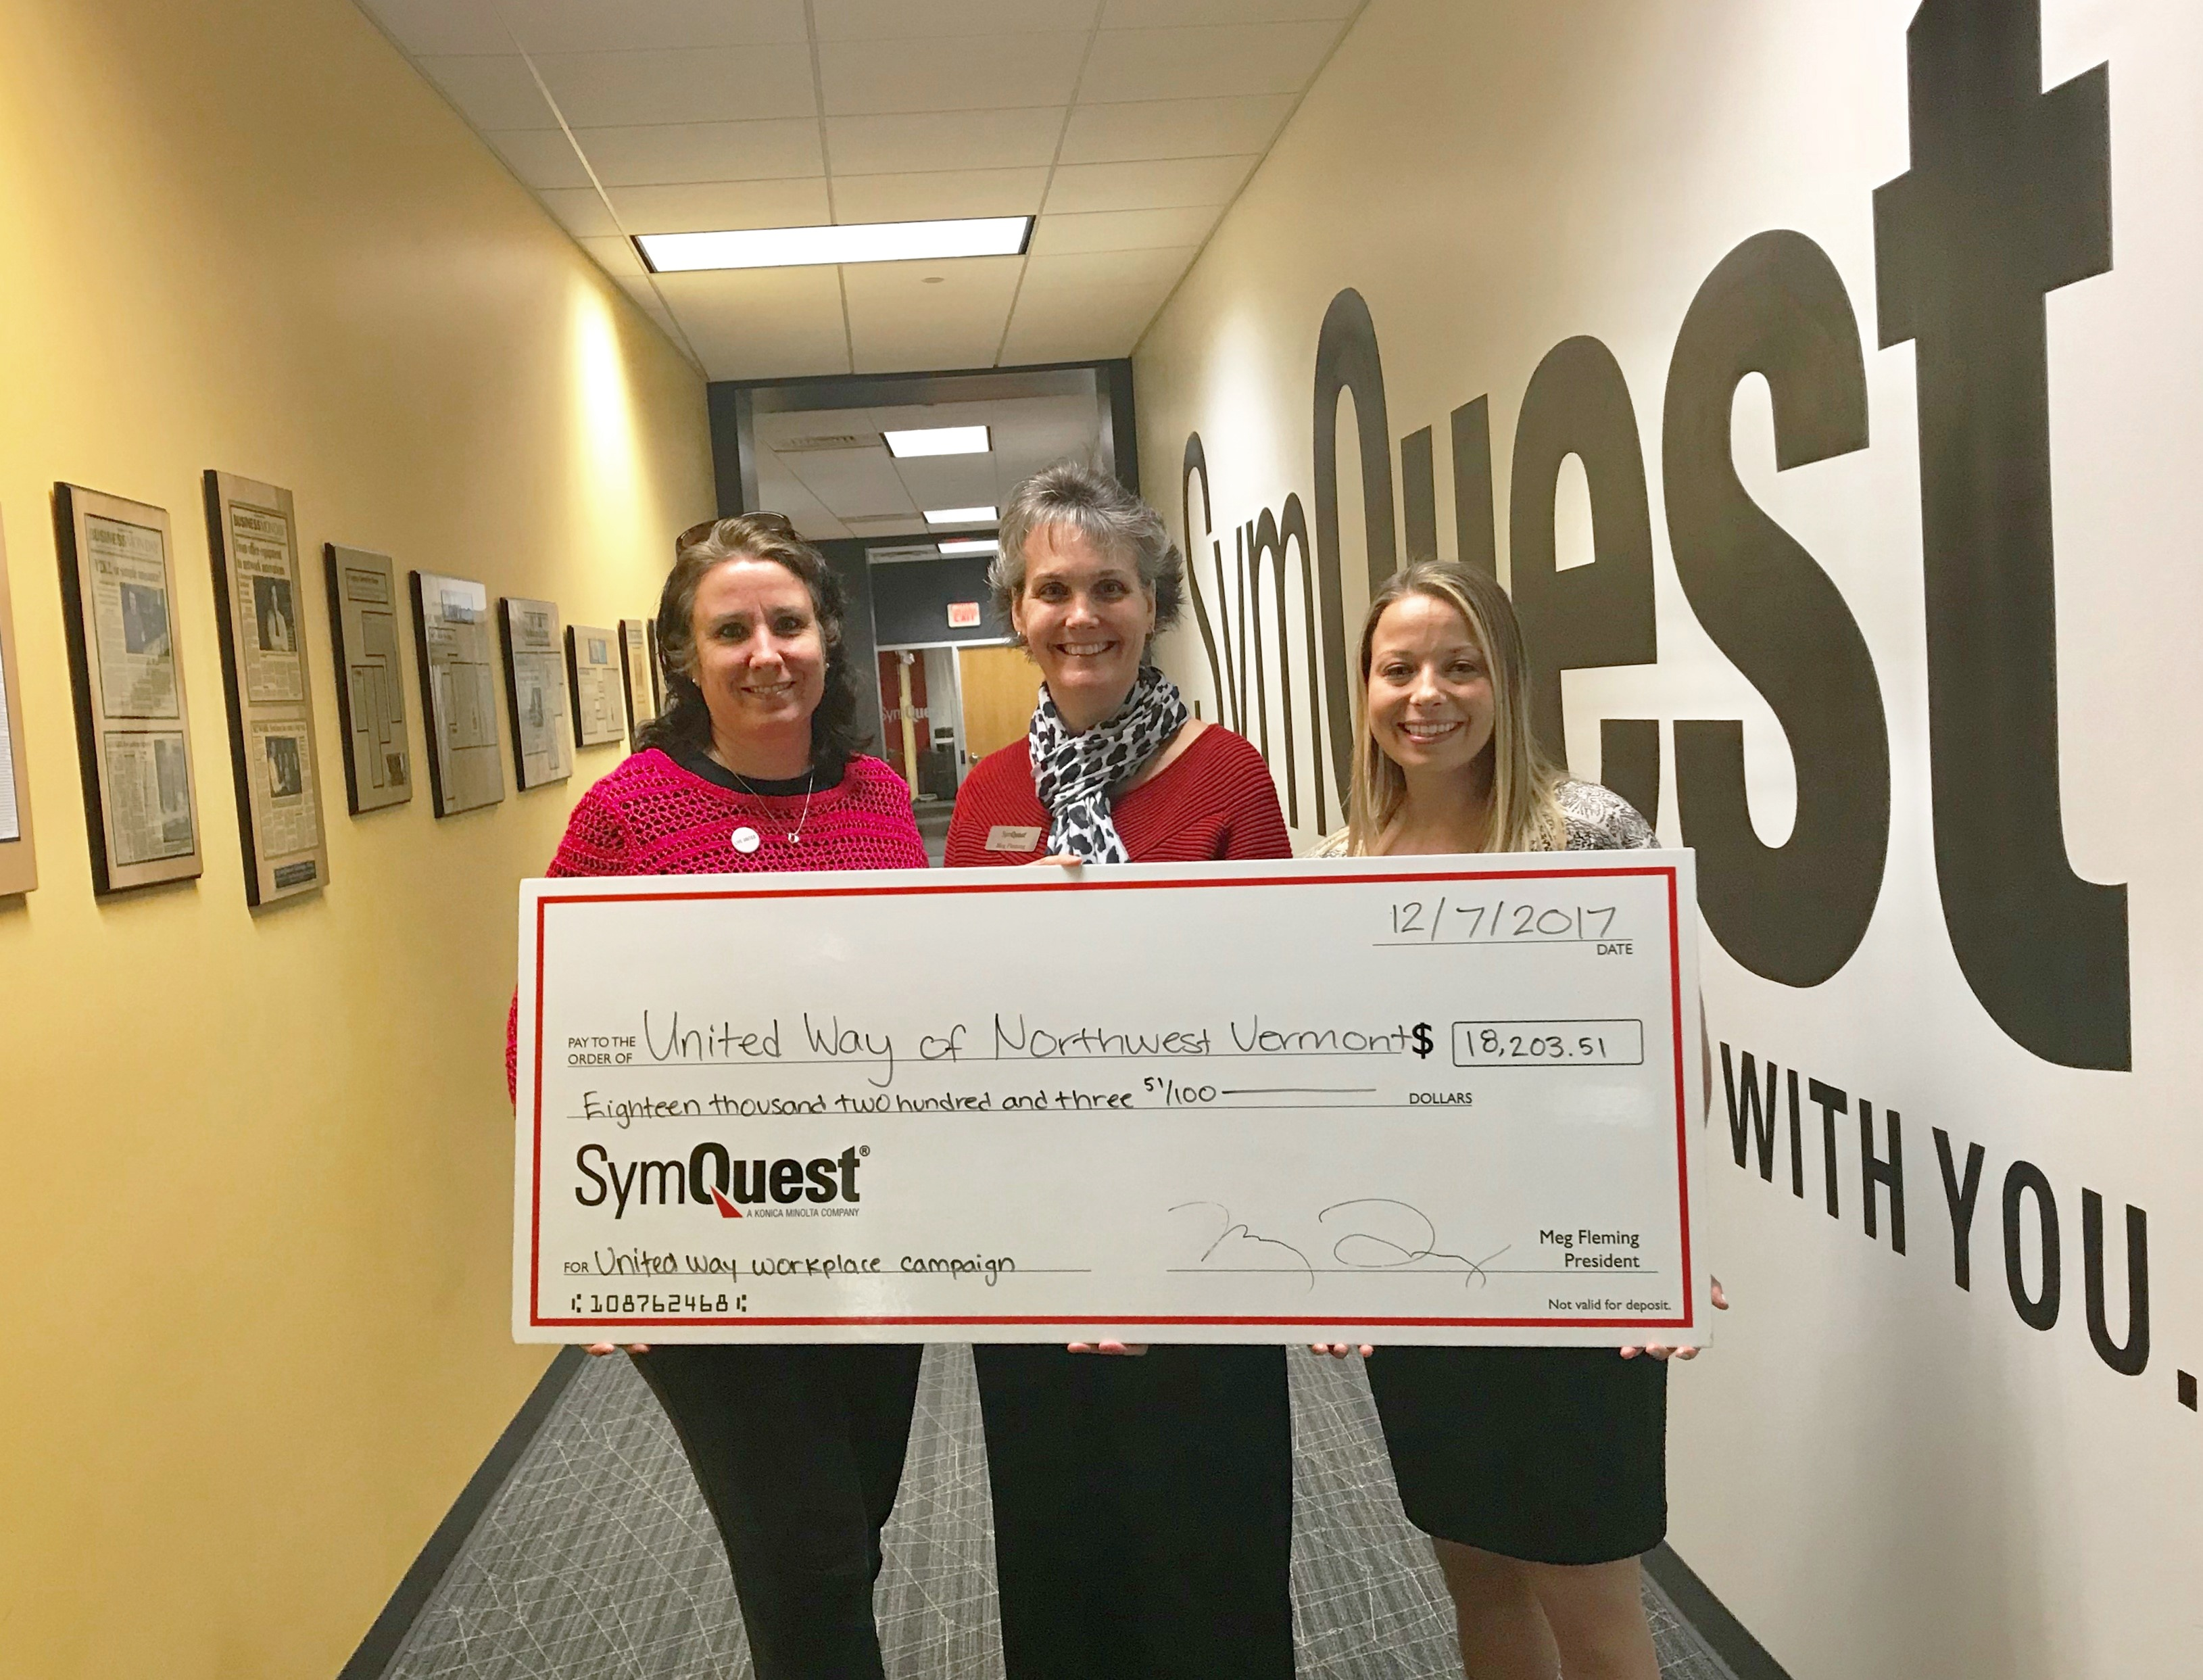 SymQuest Raises More Than $18,000 for the United Way